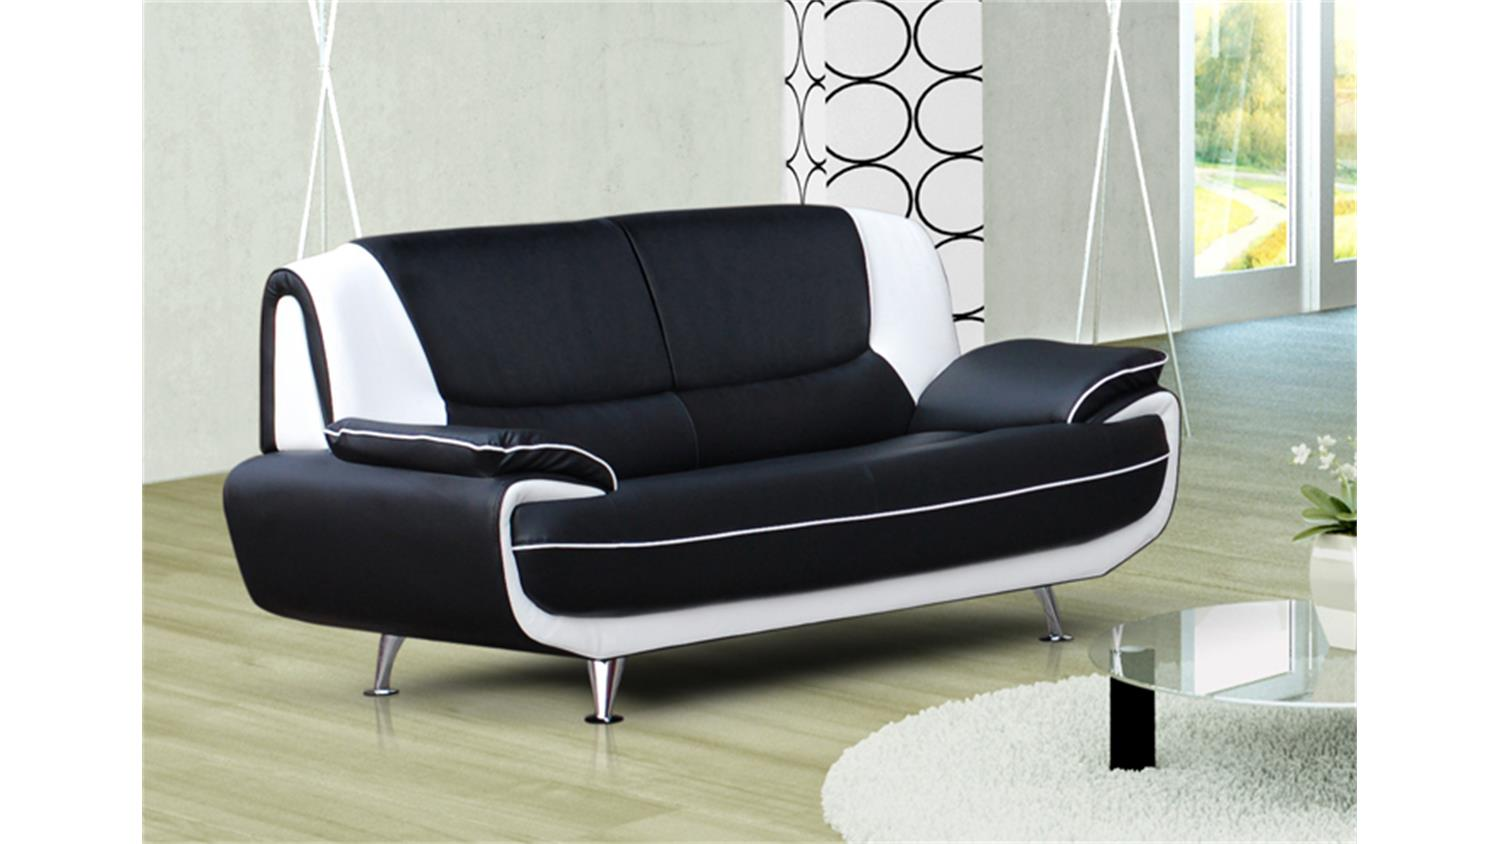 sofa palermo 3 sitzer in schwarz und wei mit metallf en. Black Bedroom Furniture Sets. Home Design Ideas